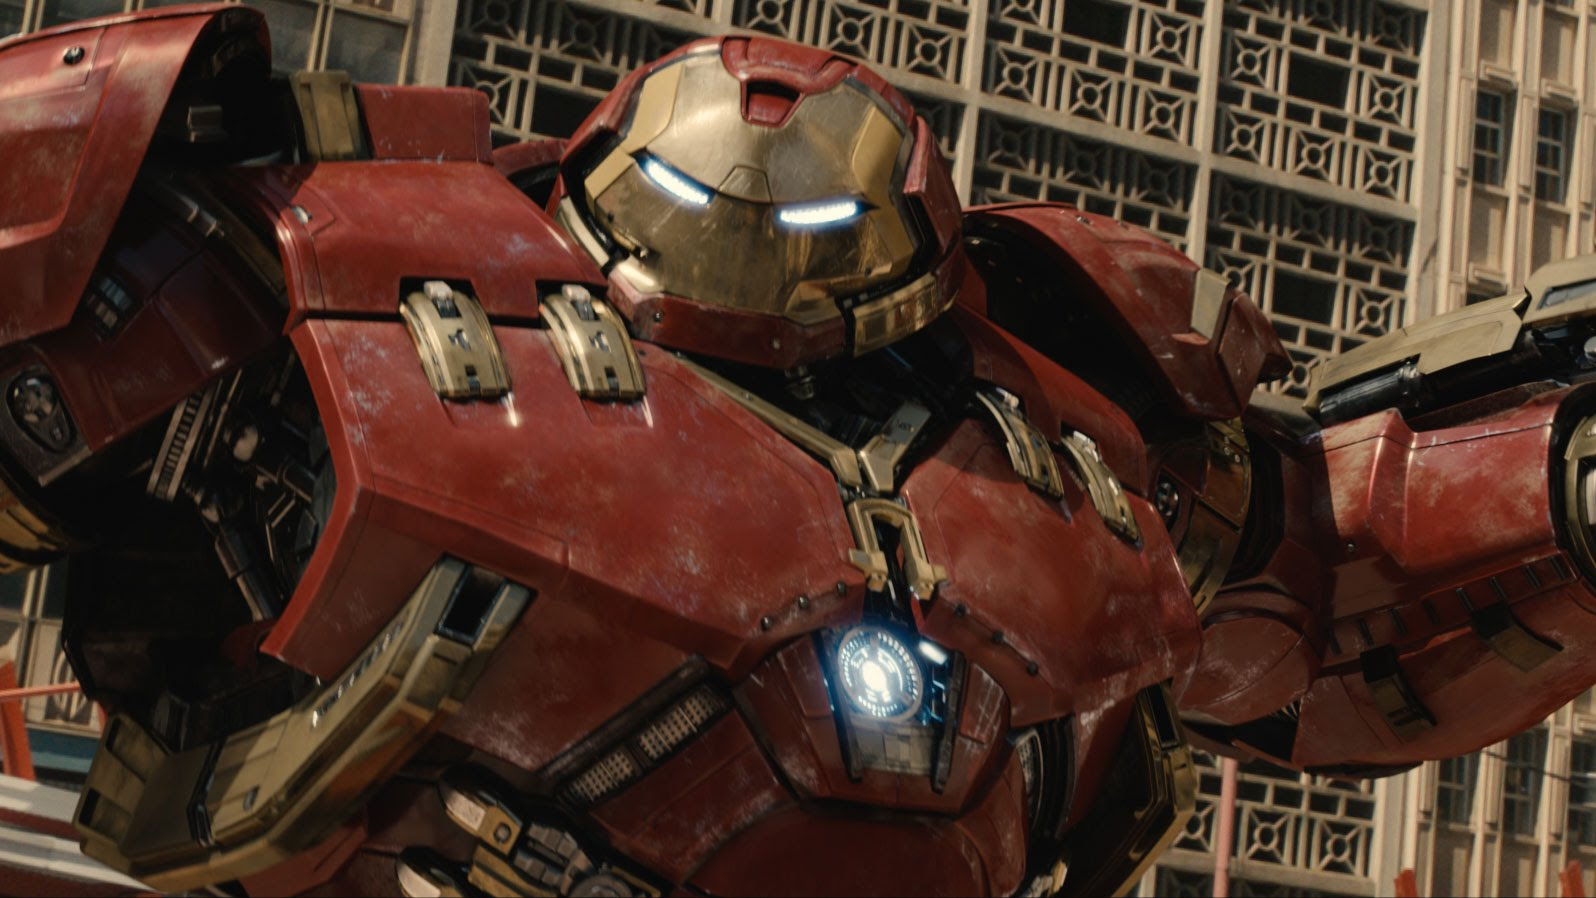 Iron Man in Avengers the Age-of Ultron